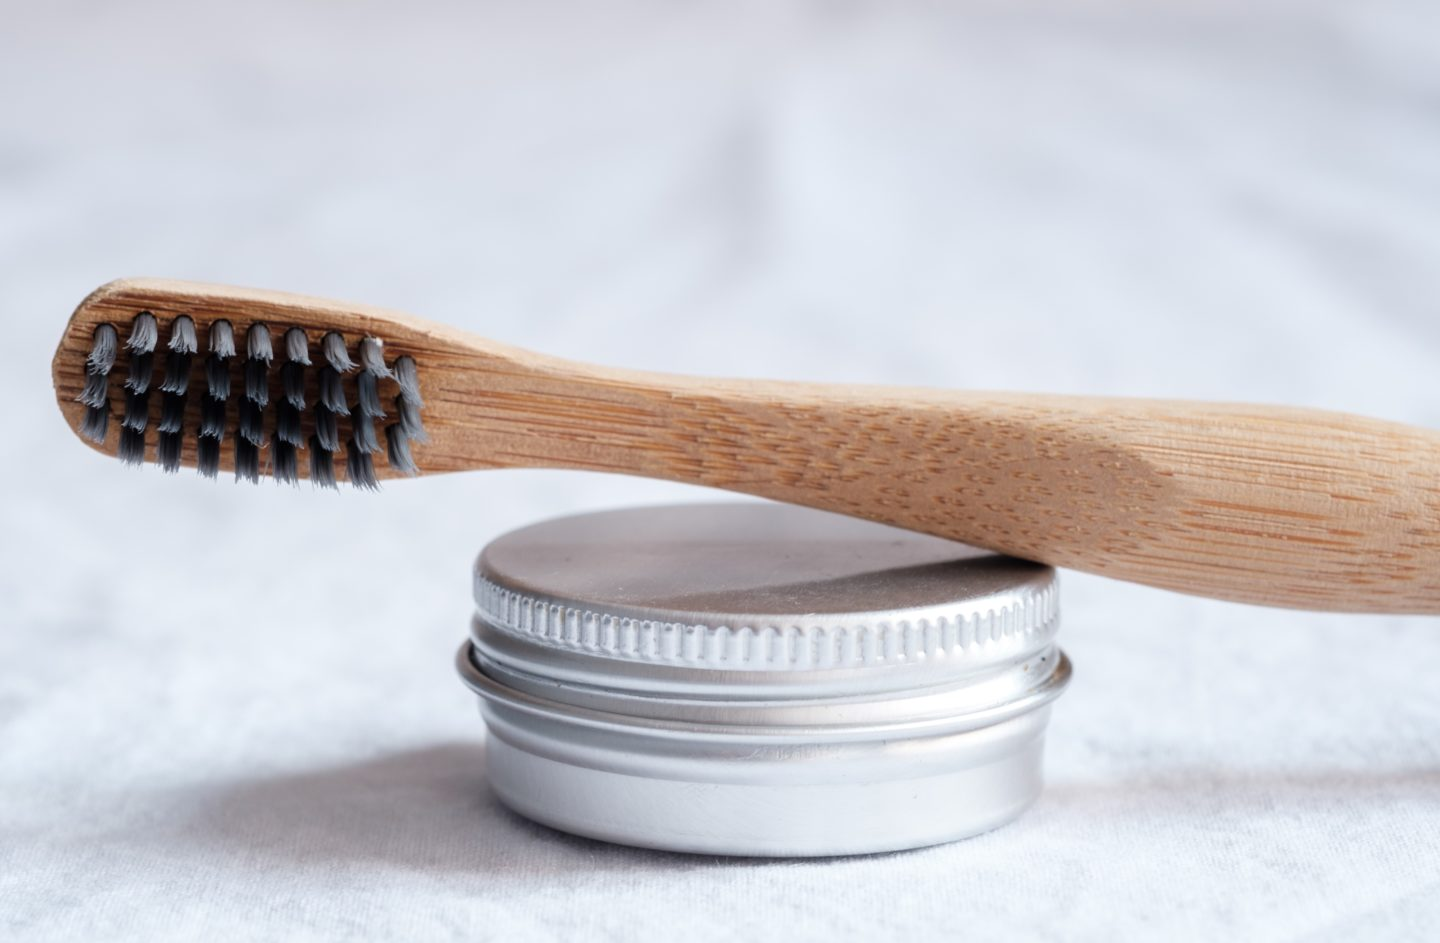 Using a bamboo toothbrush is an easy plastic free swap for kids and adults.